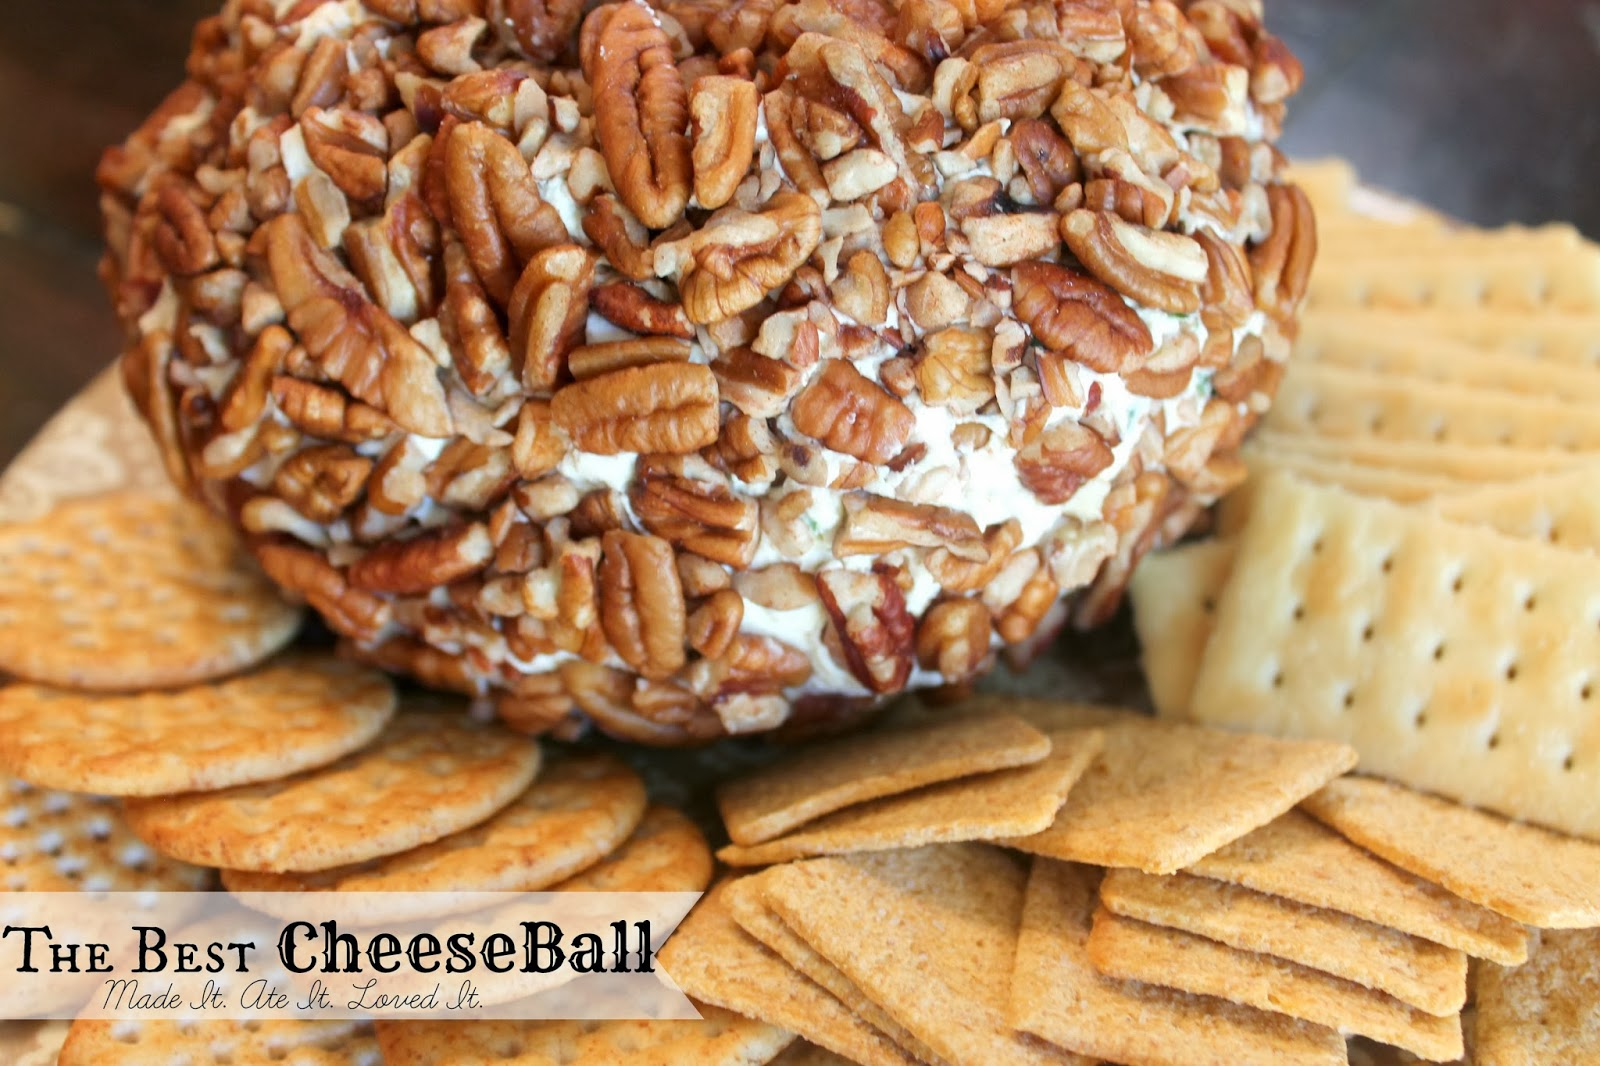 Made It. Ate It. Loved It.: The BEST Cheese Ball